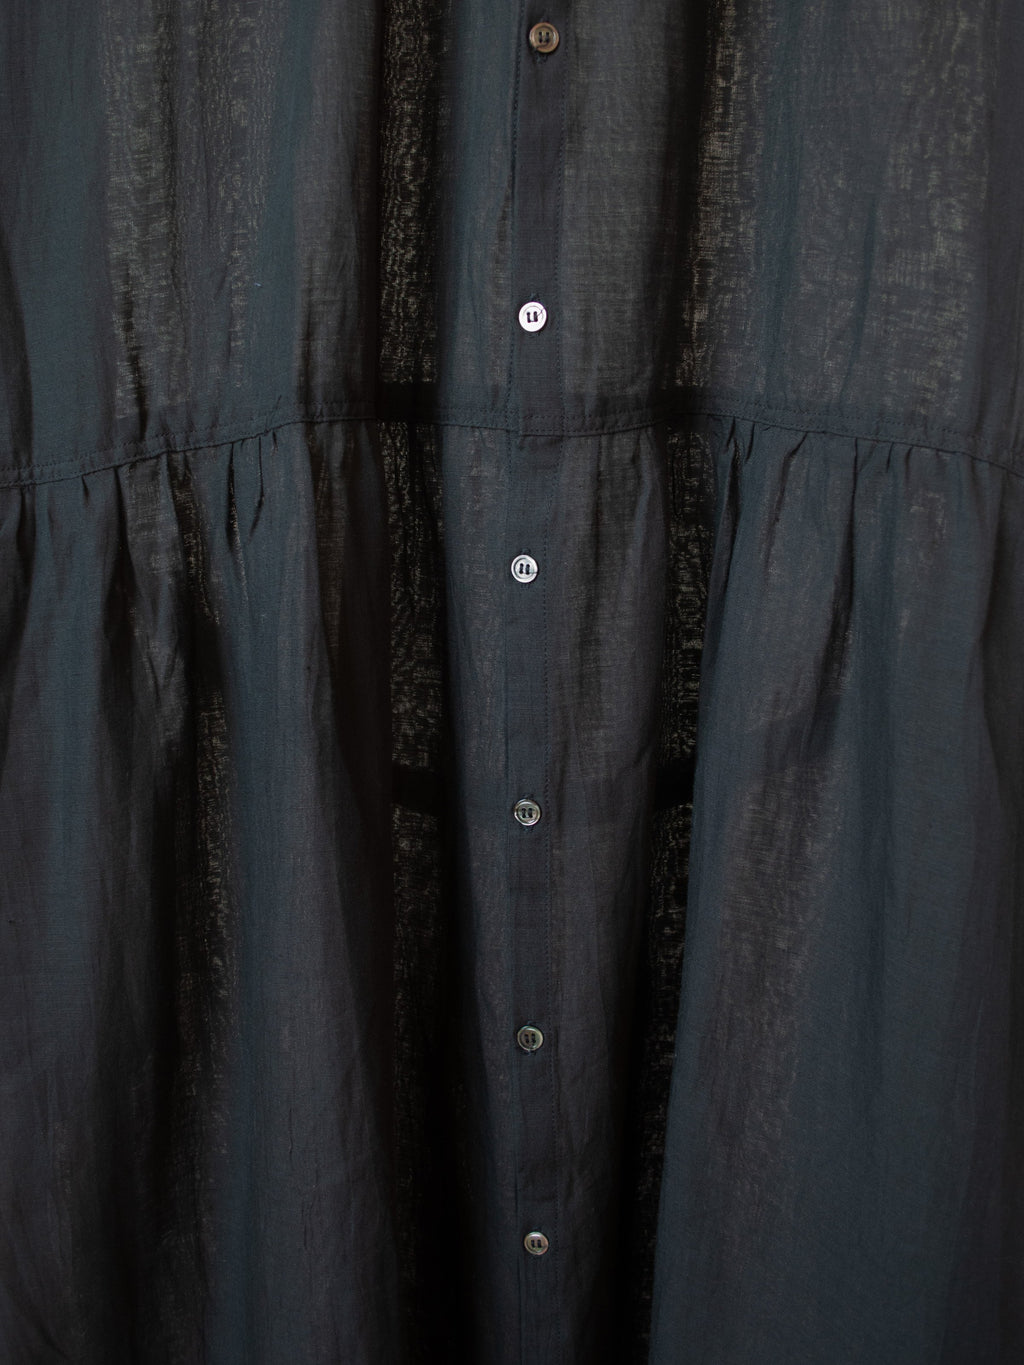 Namu Shop - Ichi Antiquites Cotton Linen Belted Gather Dress - Black